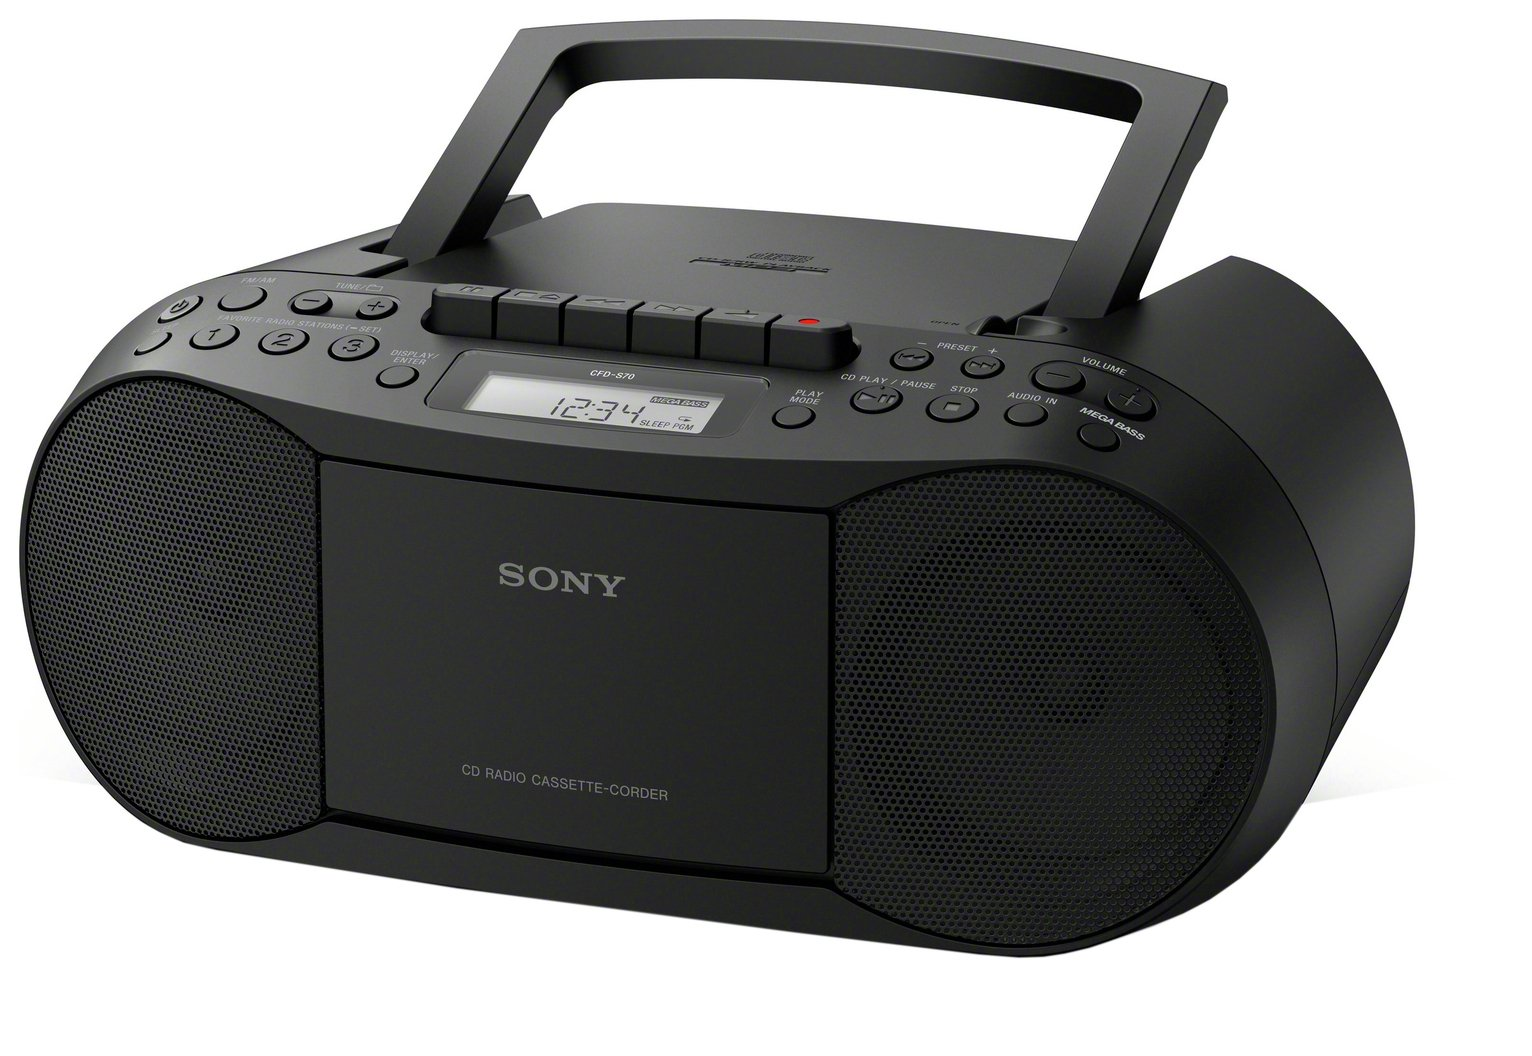 Sony CFD-S70 CD and Cassette Player With Radio Results for dab radio cd player